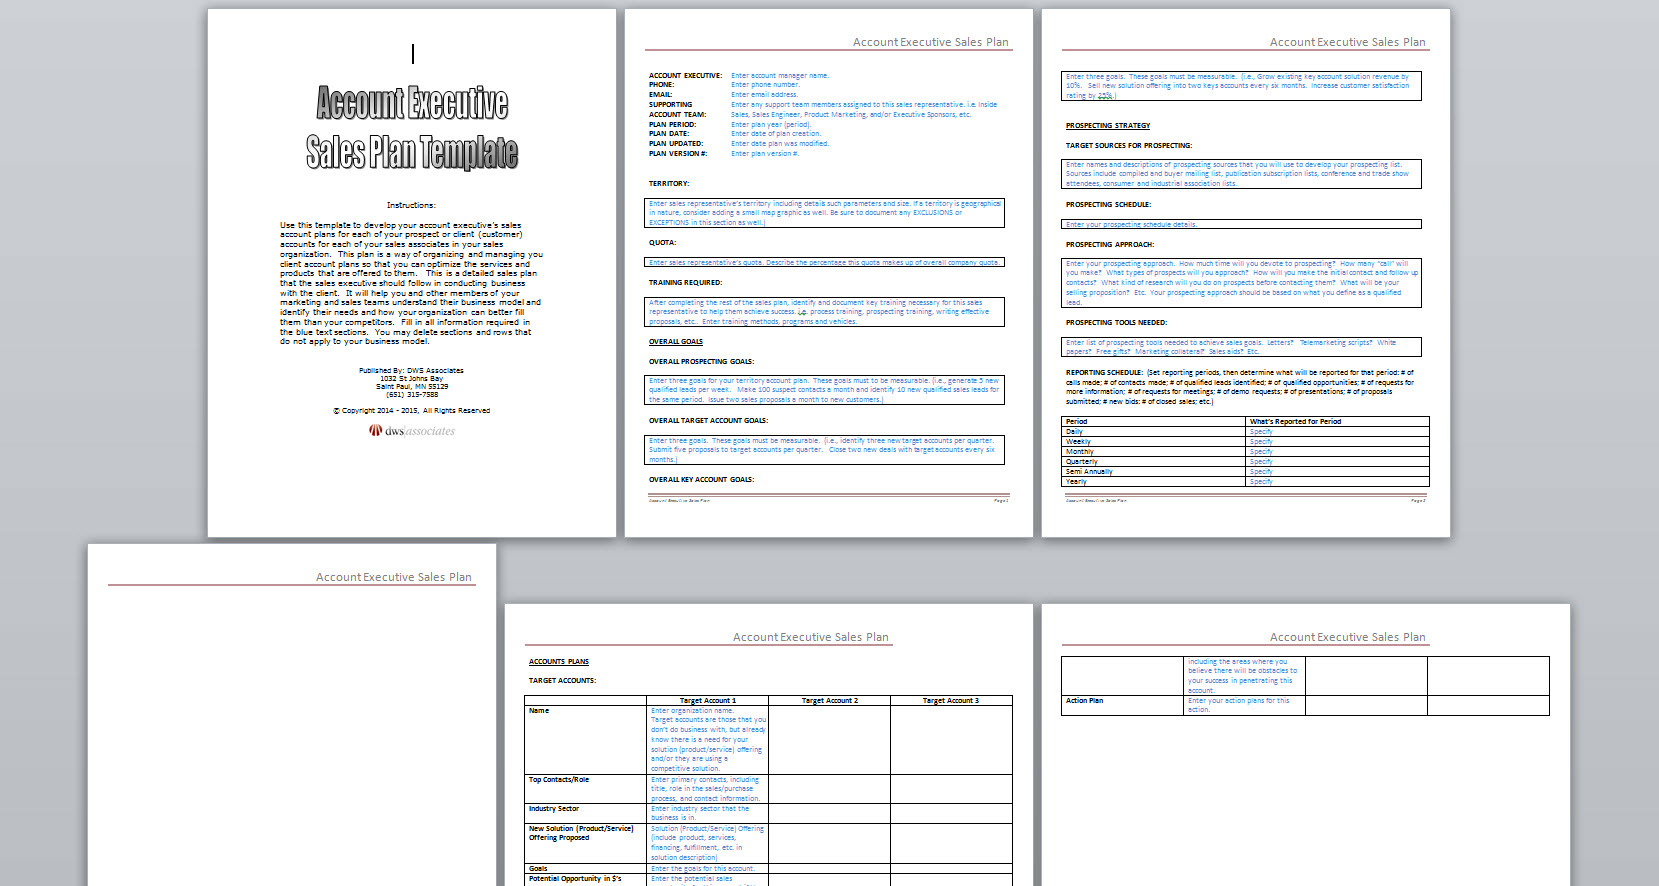 1081_accountexecutivesalesplantemplate